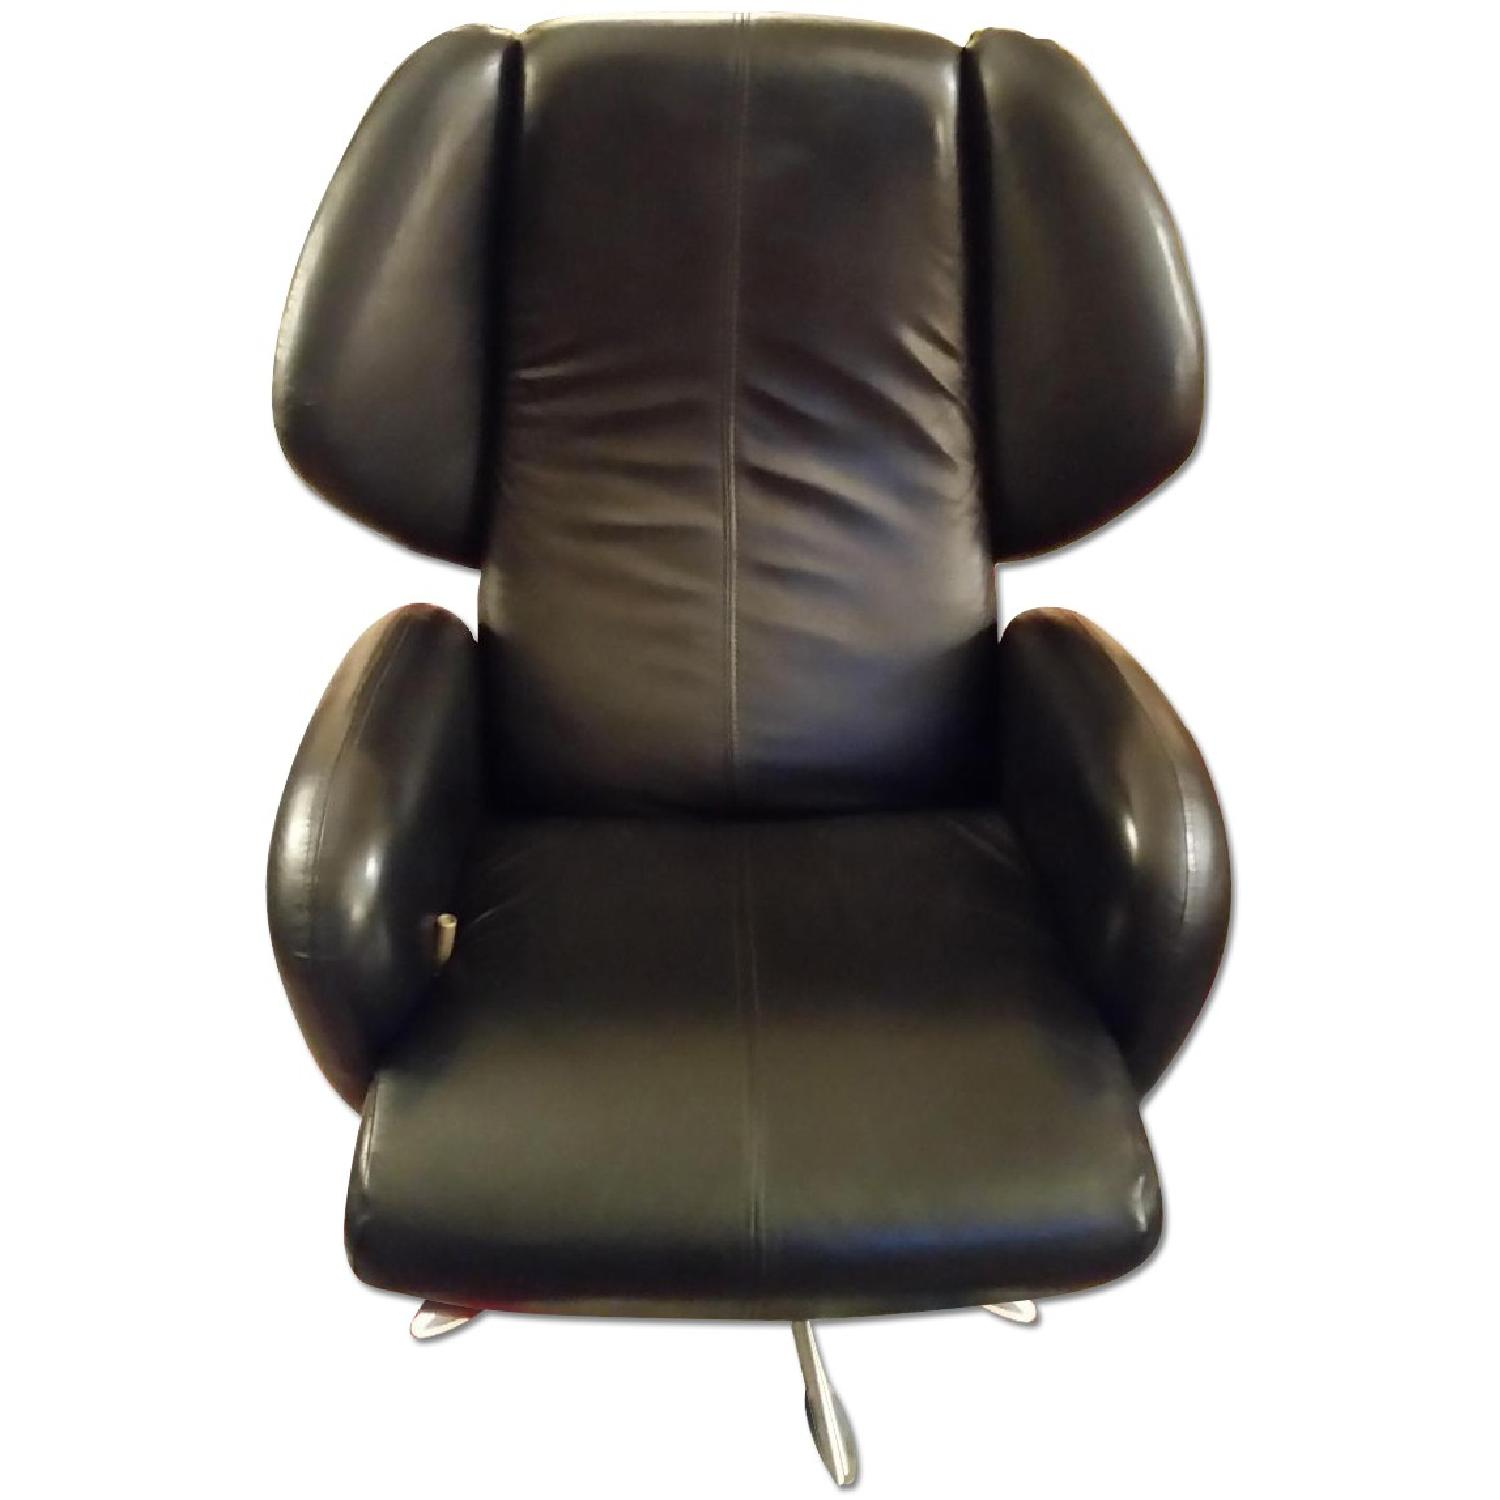 Lee's Art Shop Leather Reading Chair - image-0